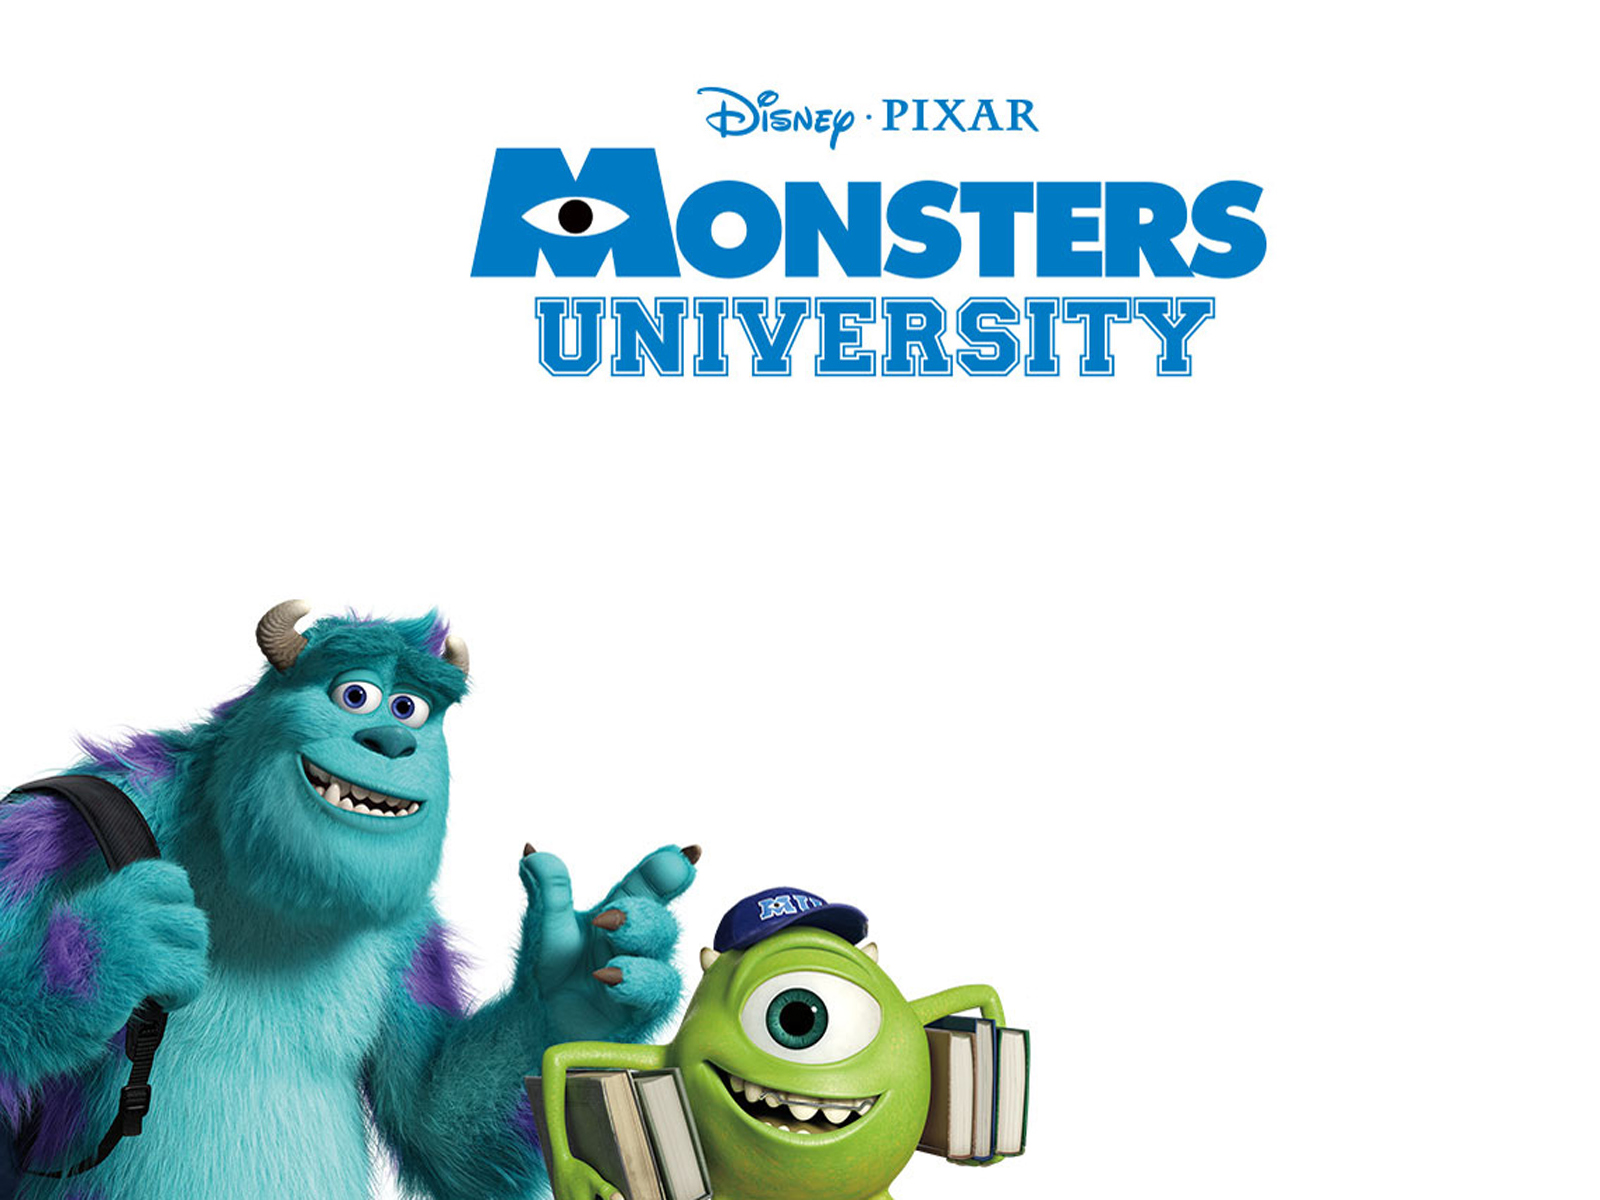 Hd wallpaper monster university 2013 pixar monsters university 3d hd wallpaper voltagebd Images